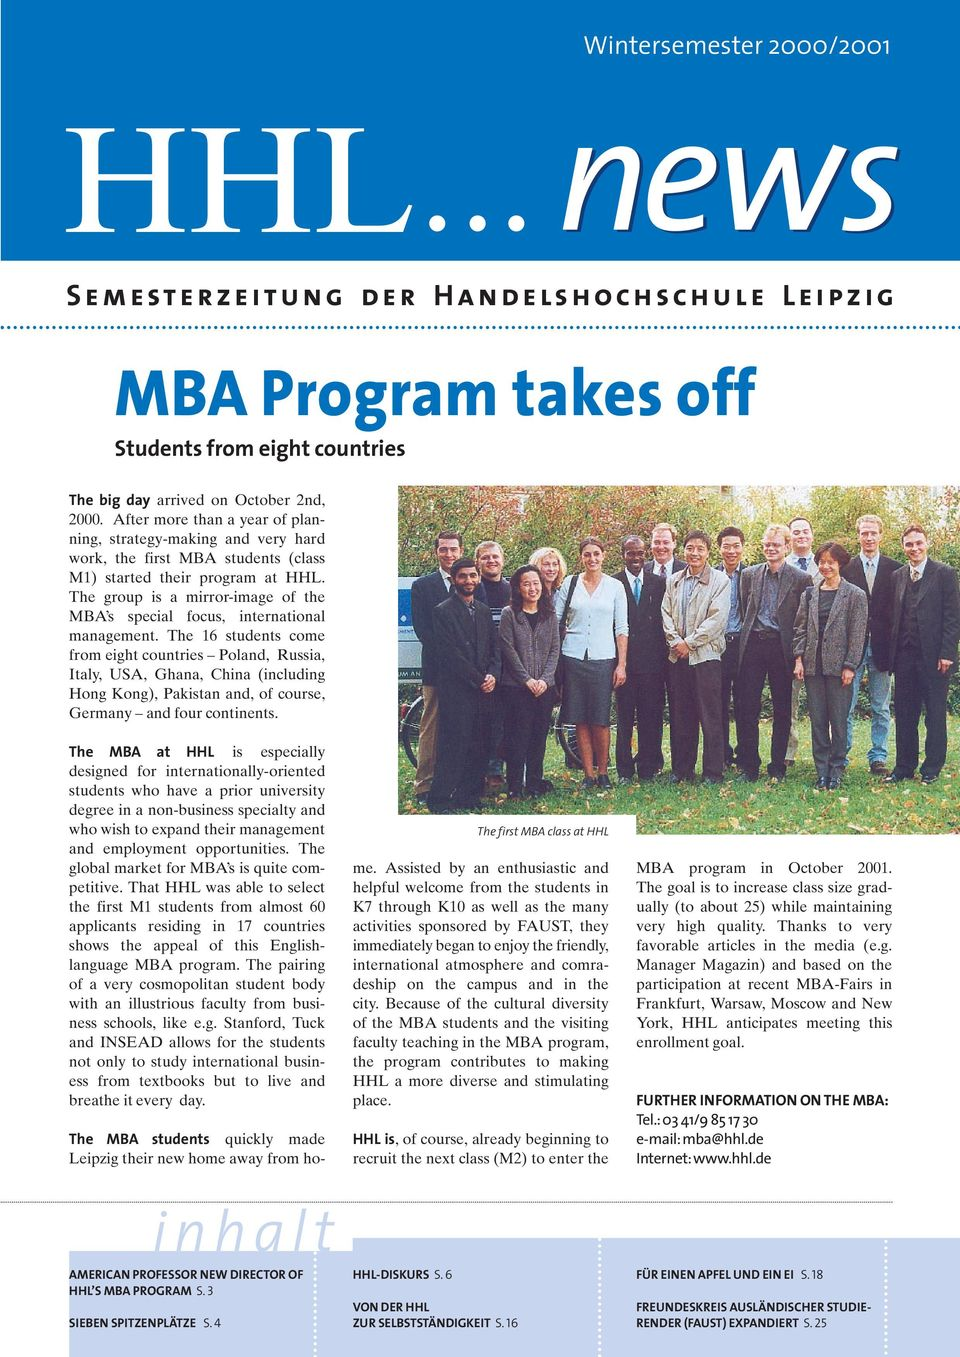 The group is a mirror-image of the MBA s special focus, international management.